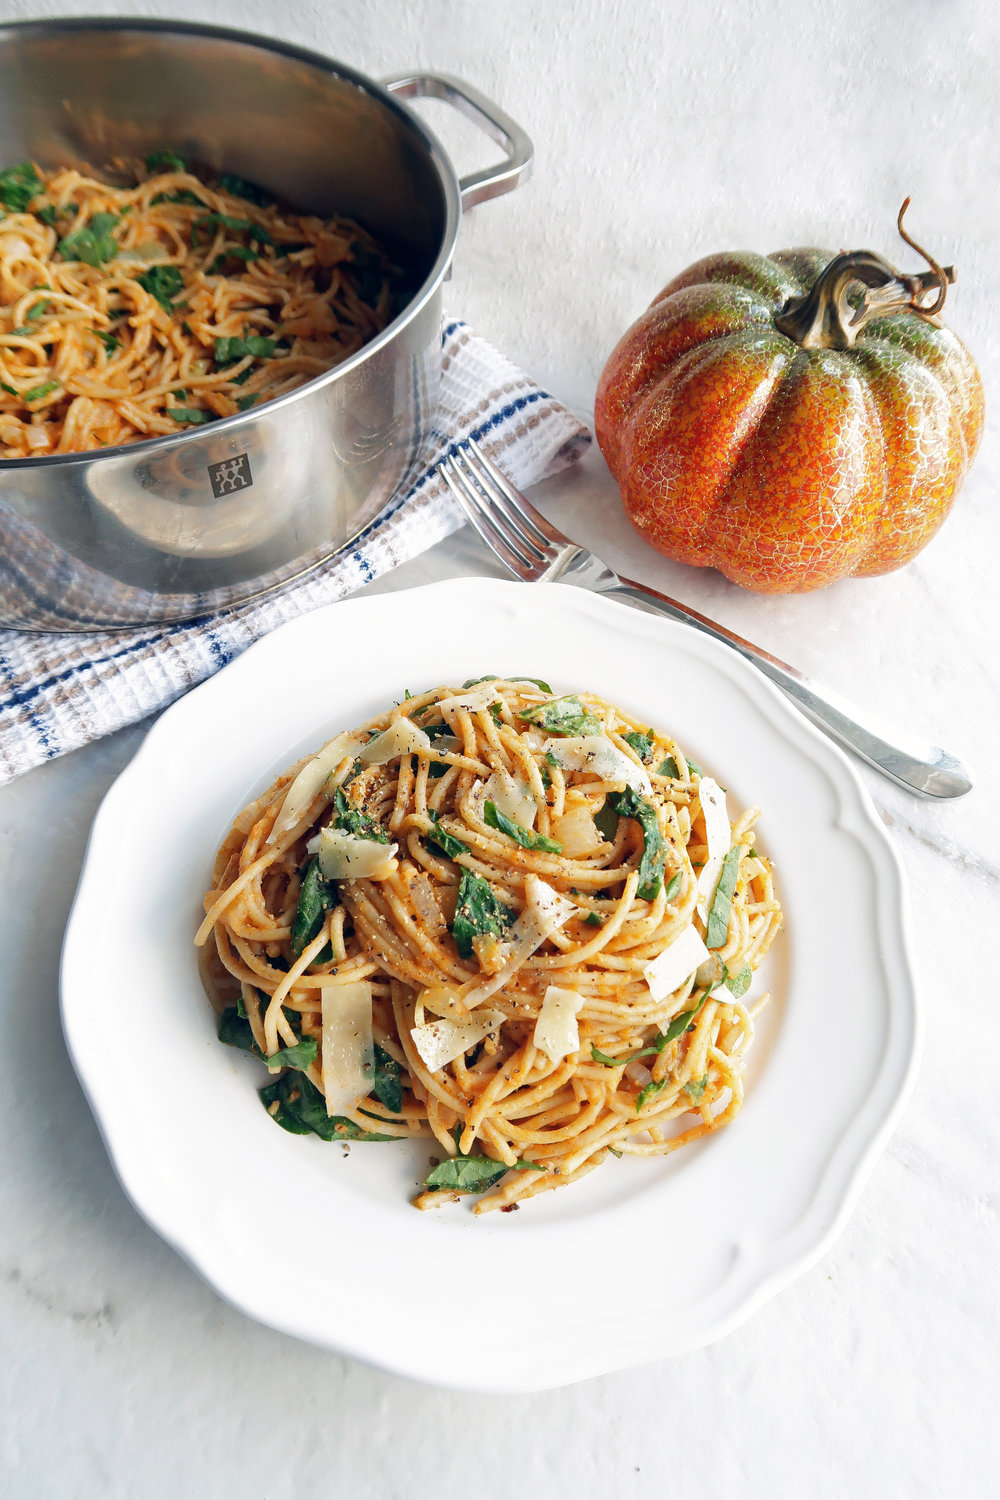 Spaghetti with creamy pumpkin sauce on white plate with more spaghetti in a metal pot in the background.